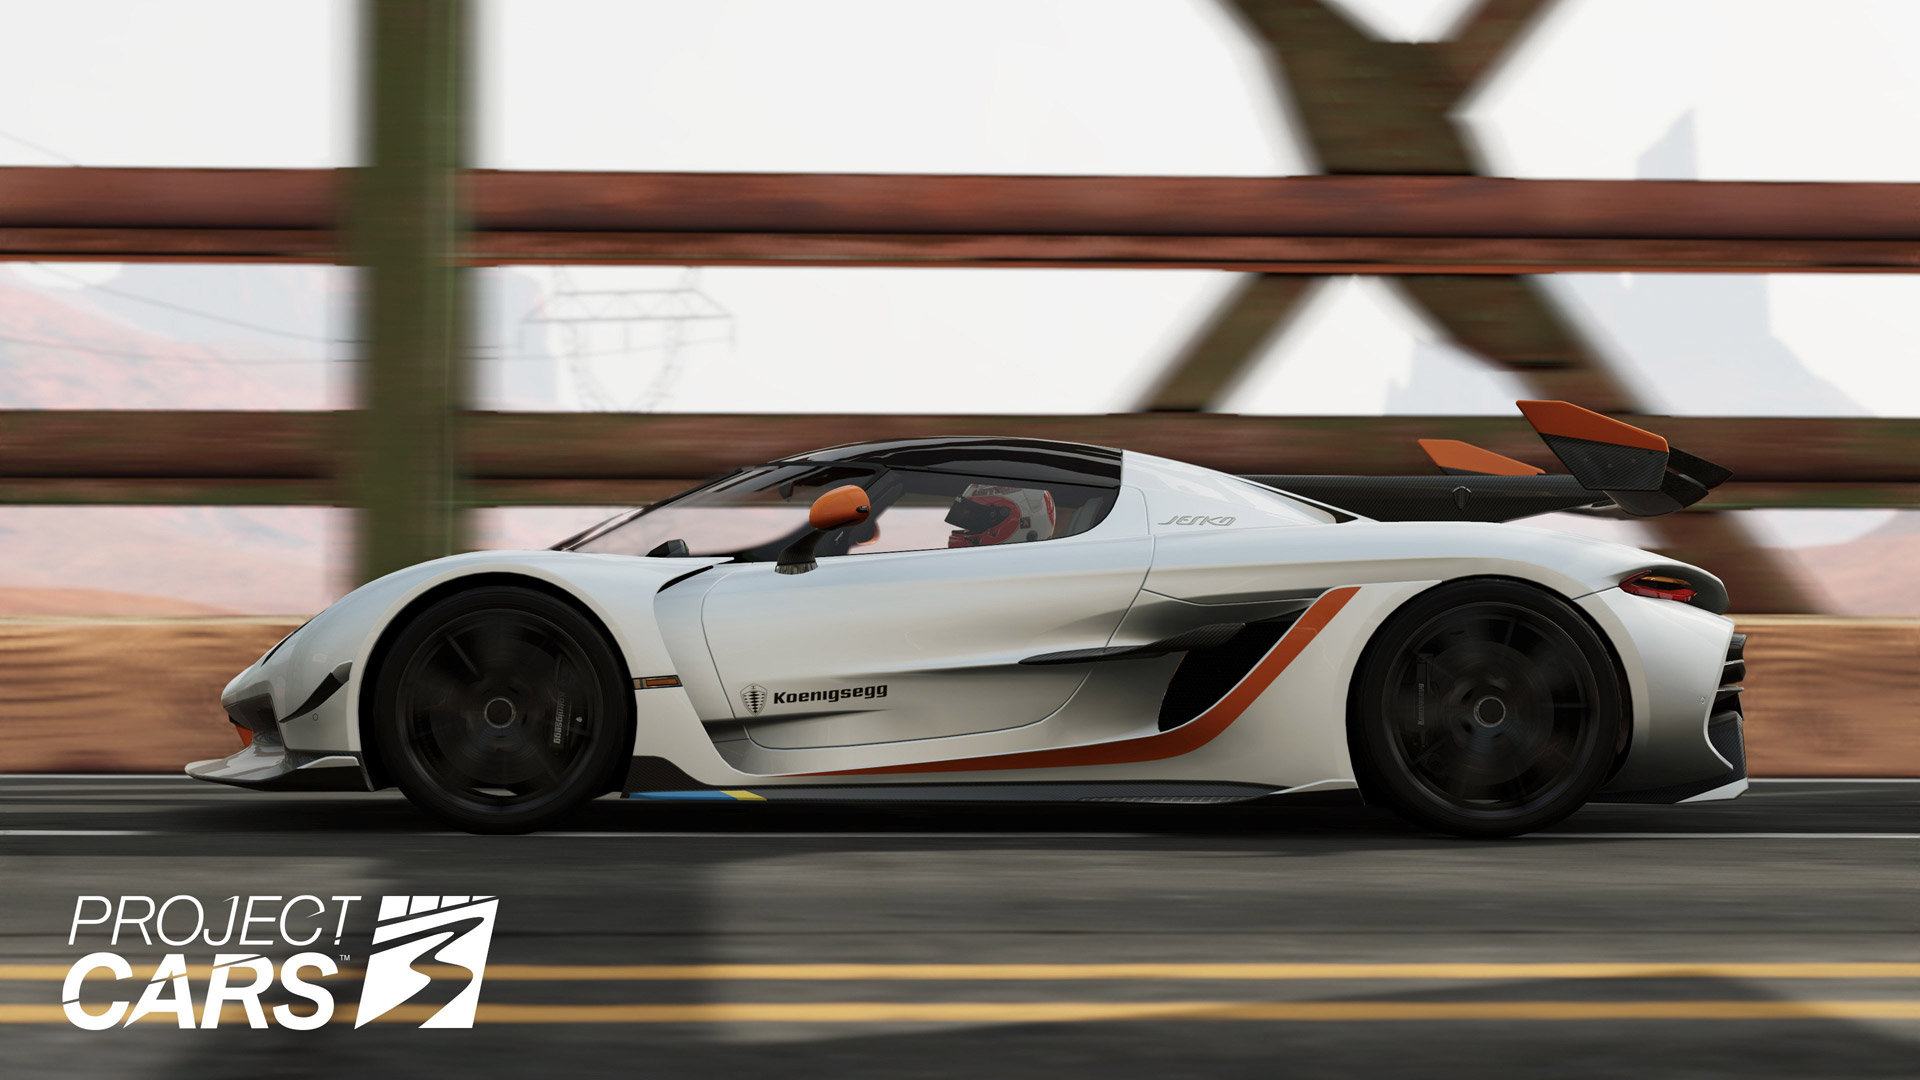 Free Project Cars 3 Wallpaper in 1920x1080